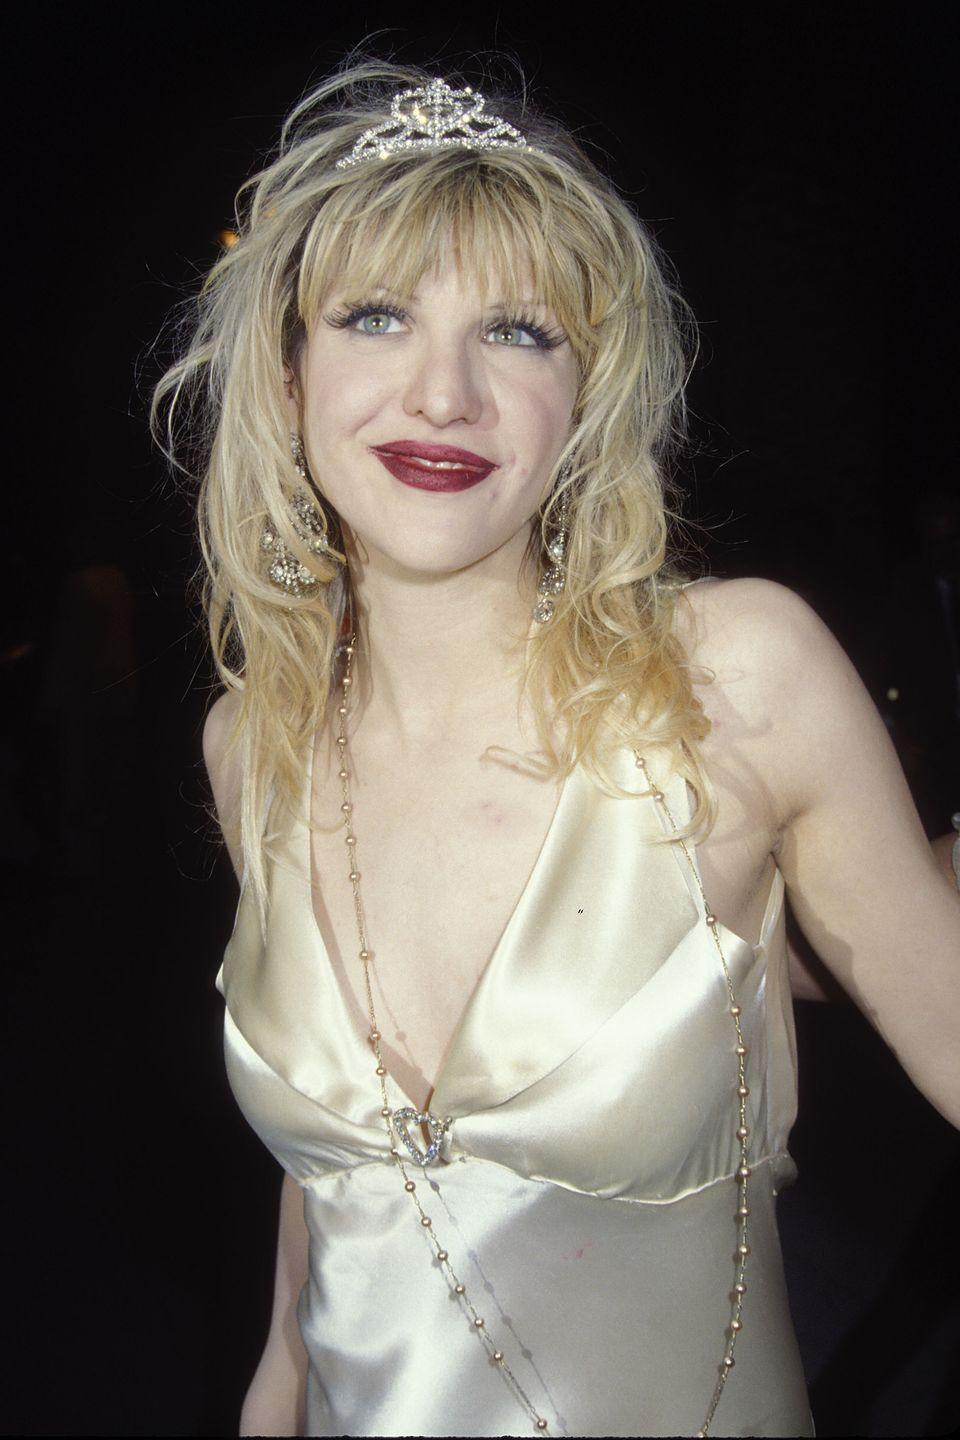 <p>Courtney Love is a maligned, complicated woman who is living proof that men are allowed to be messy rock stars in a way that women are not. She is berated for all the things her late husband, Kurt Cobain, was celebrated for - where he was seen as grungy and moody, she was seen as dirty and difficult, while his work was venerated, hers was dismissed and her success accredited to him. If he was ambitious, she was seen as opportunistic. Some even blame Love for Cobain's suicide, dubiously claiming that she hired a hitman to kill him. Not only does this undermine his mental health struggles, but it's also evidence of a woman still being held accountable for the wellbeing of her partner.</p>